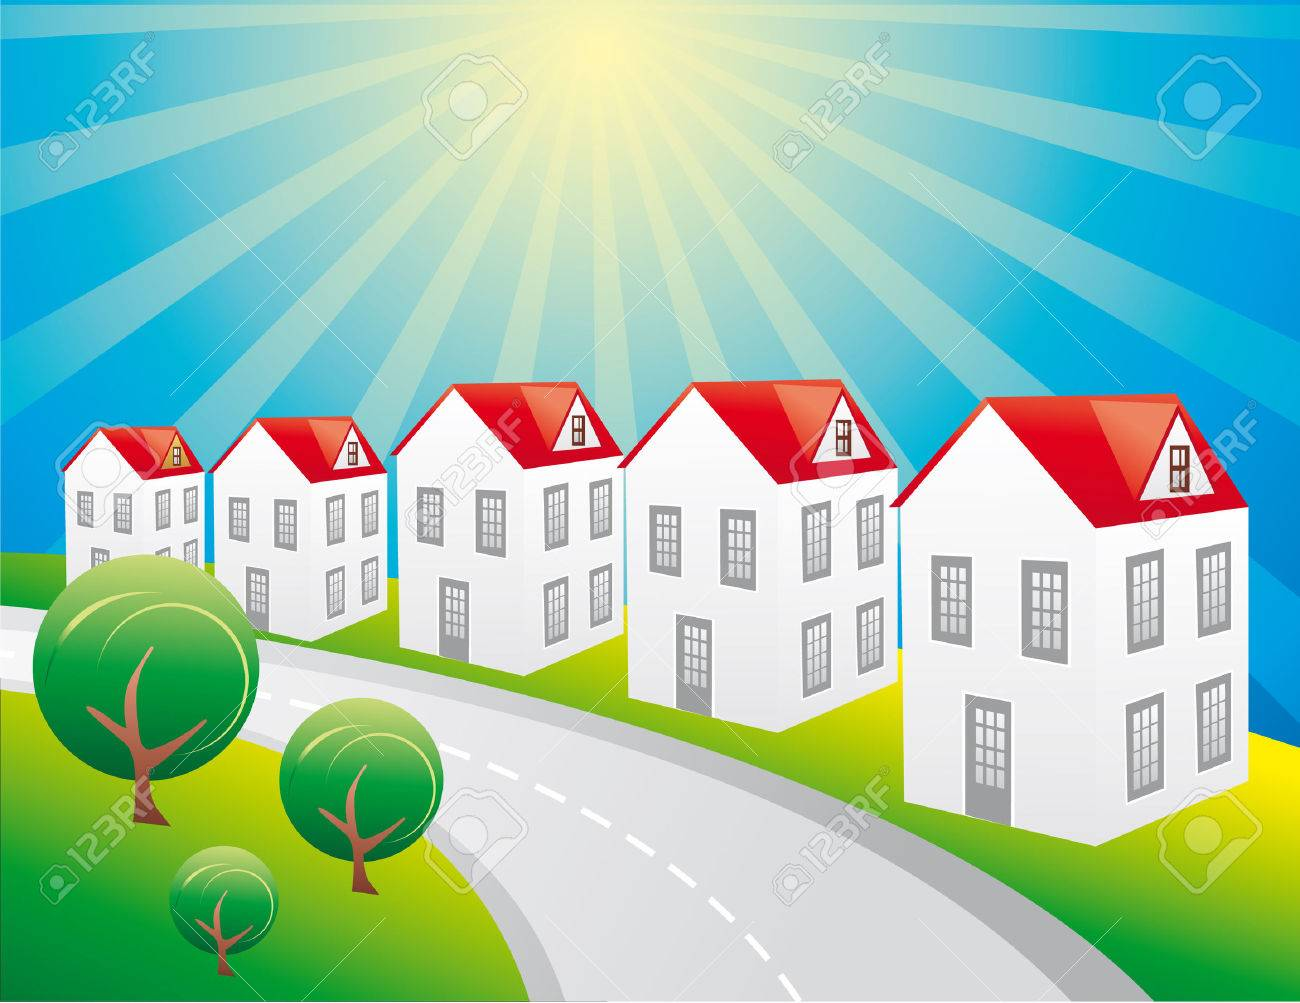 houses in a sunshine day Stock Vector - 6111099